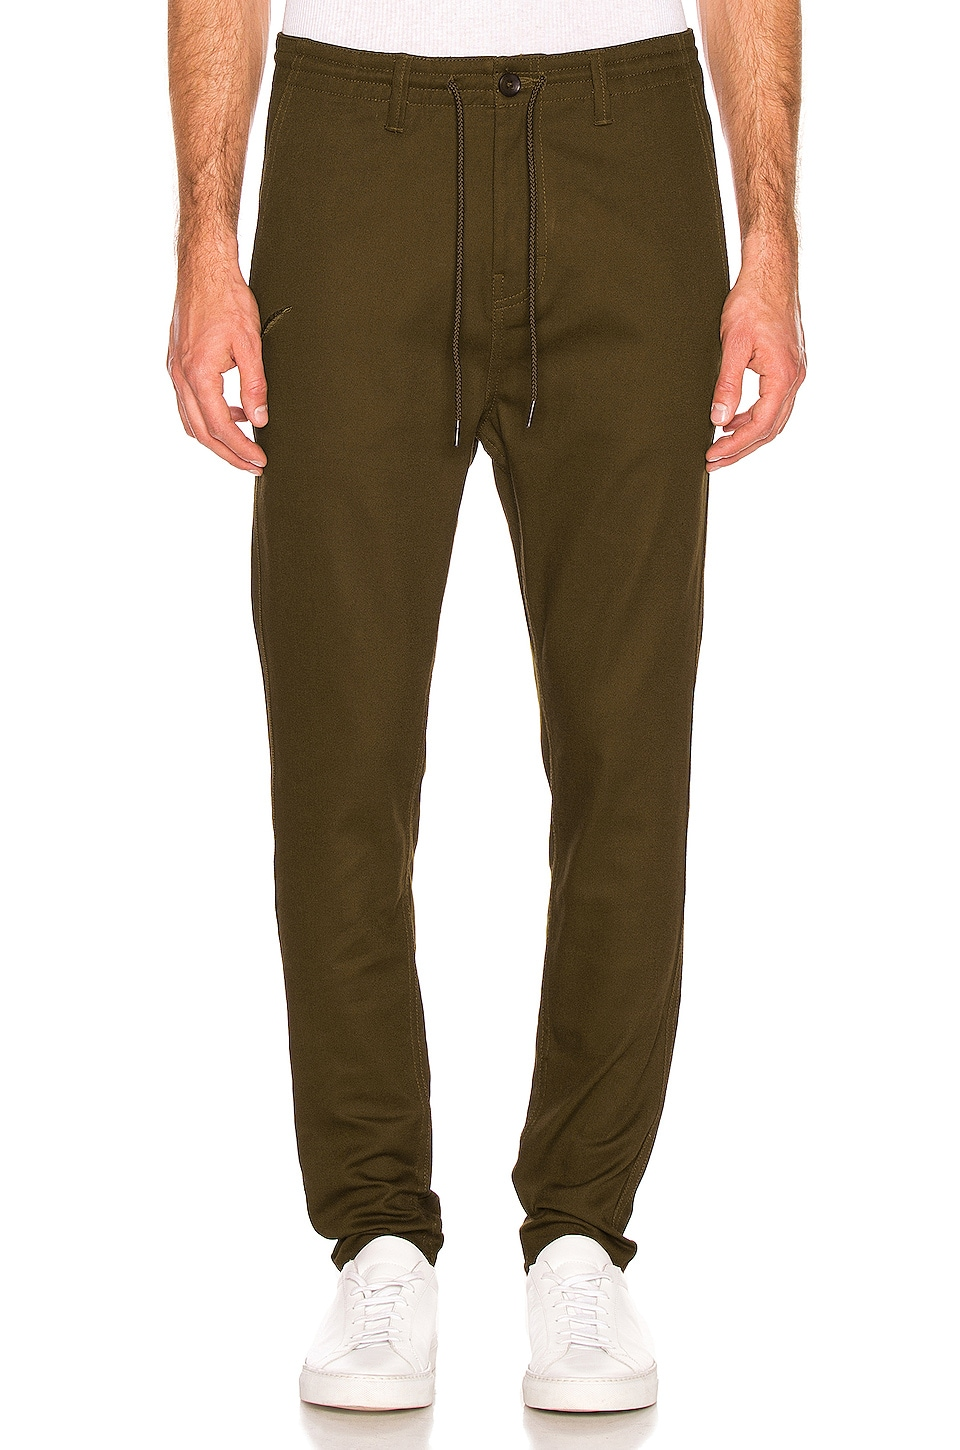 Publish Thorn Pants in Olive